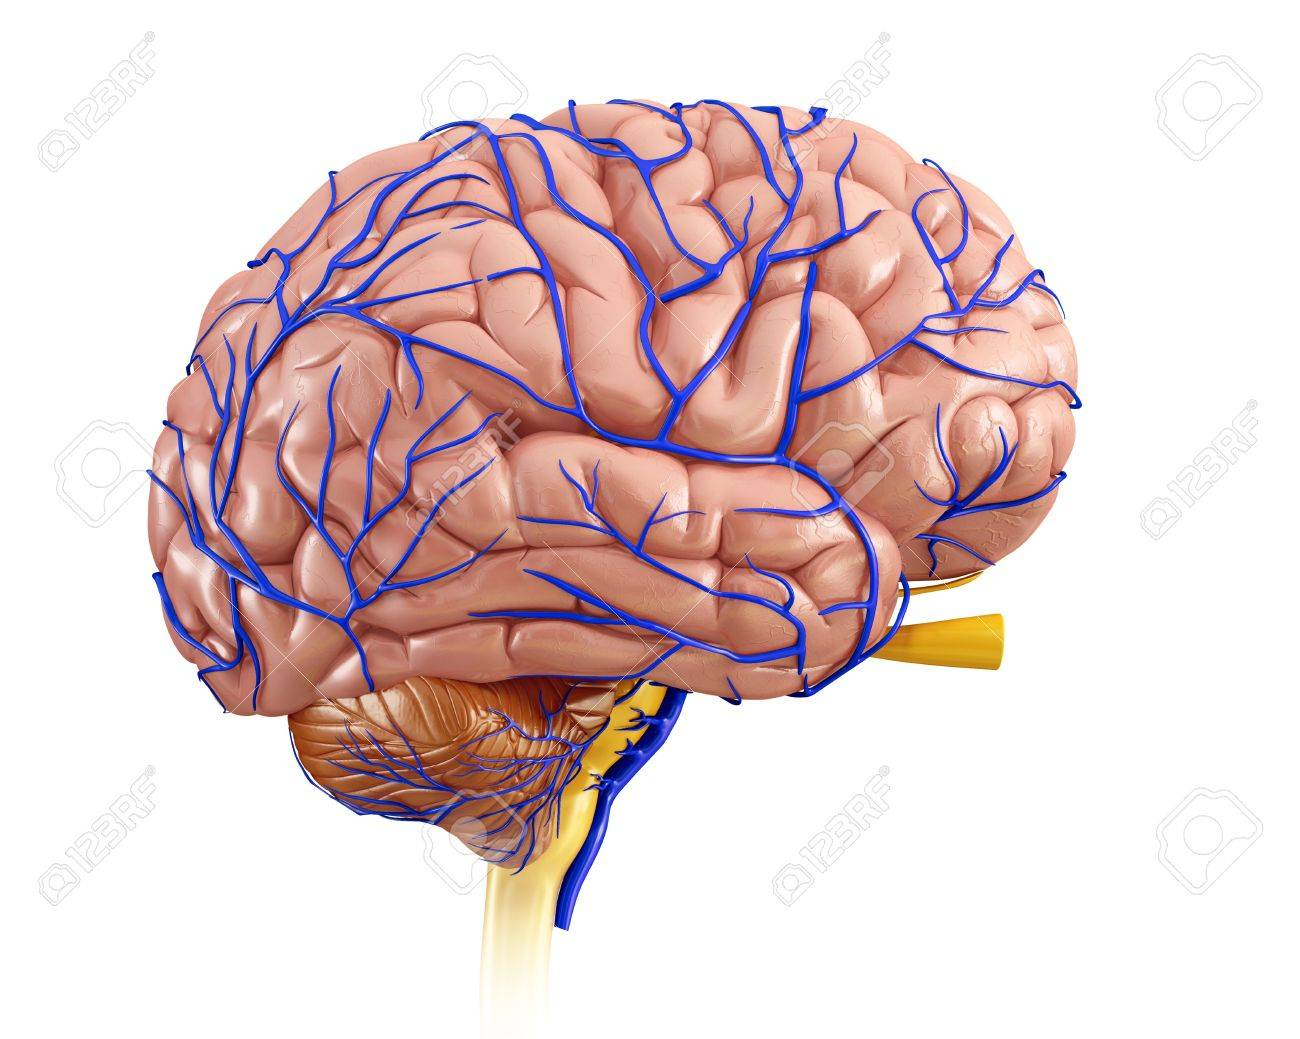 Illustration Of The Anatomy Of The Human Brain And Its Veins Stock ...